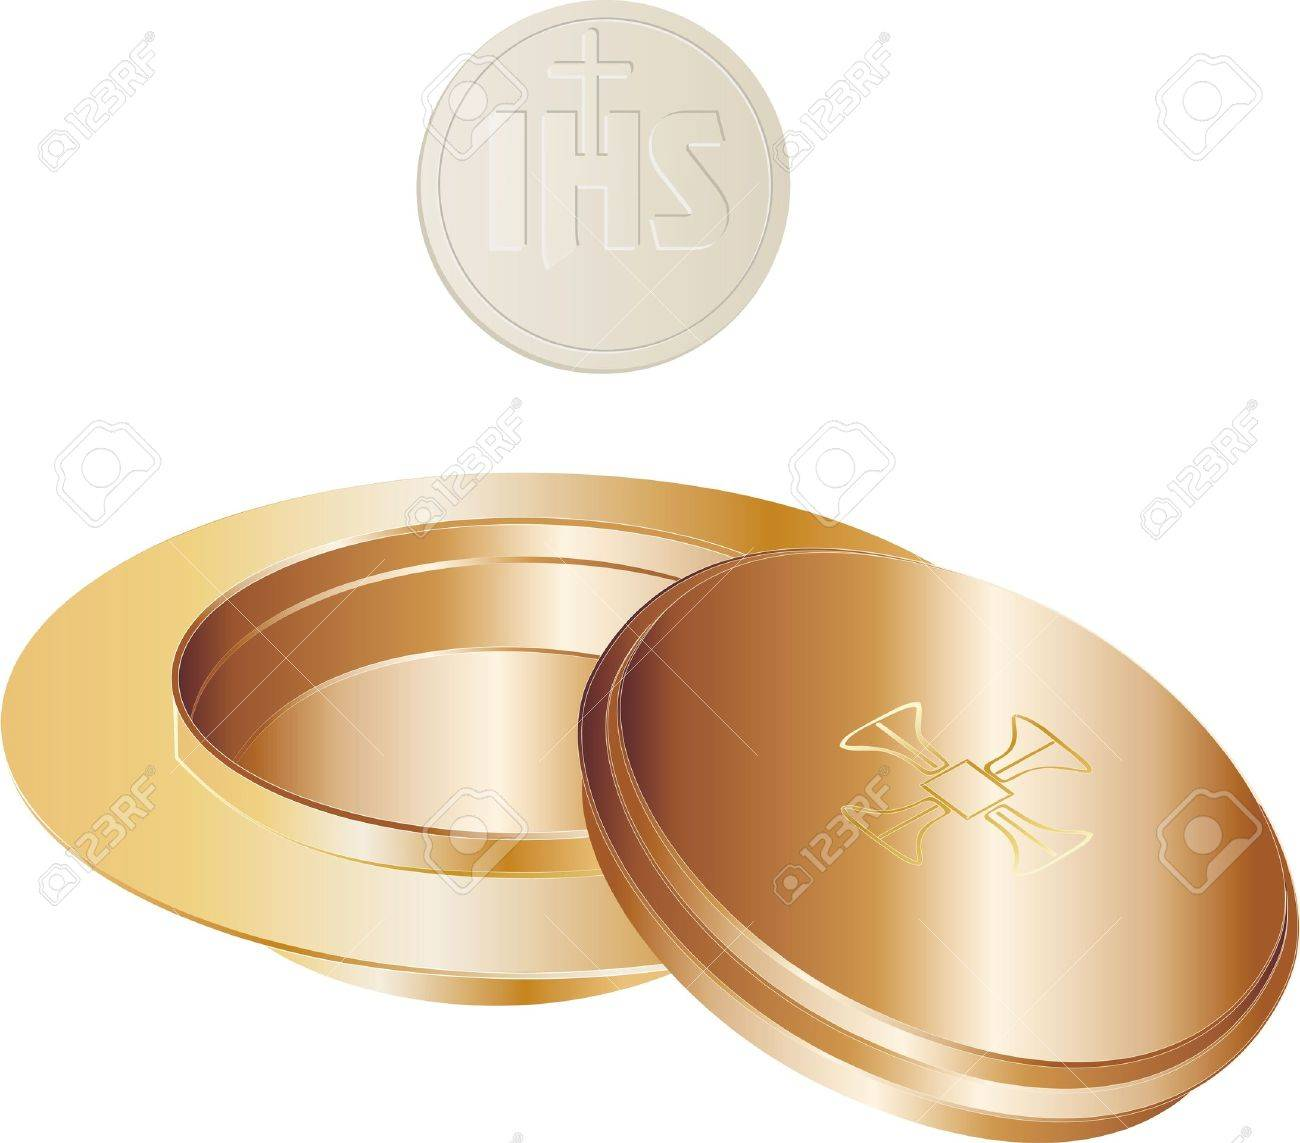 paten and wafer Stock Vector - 12085197